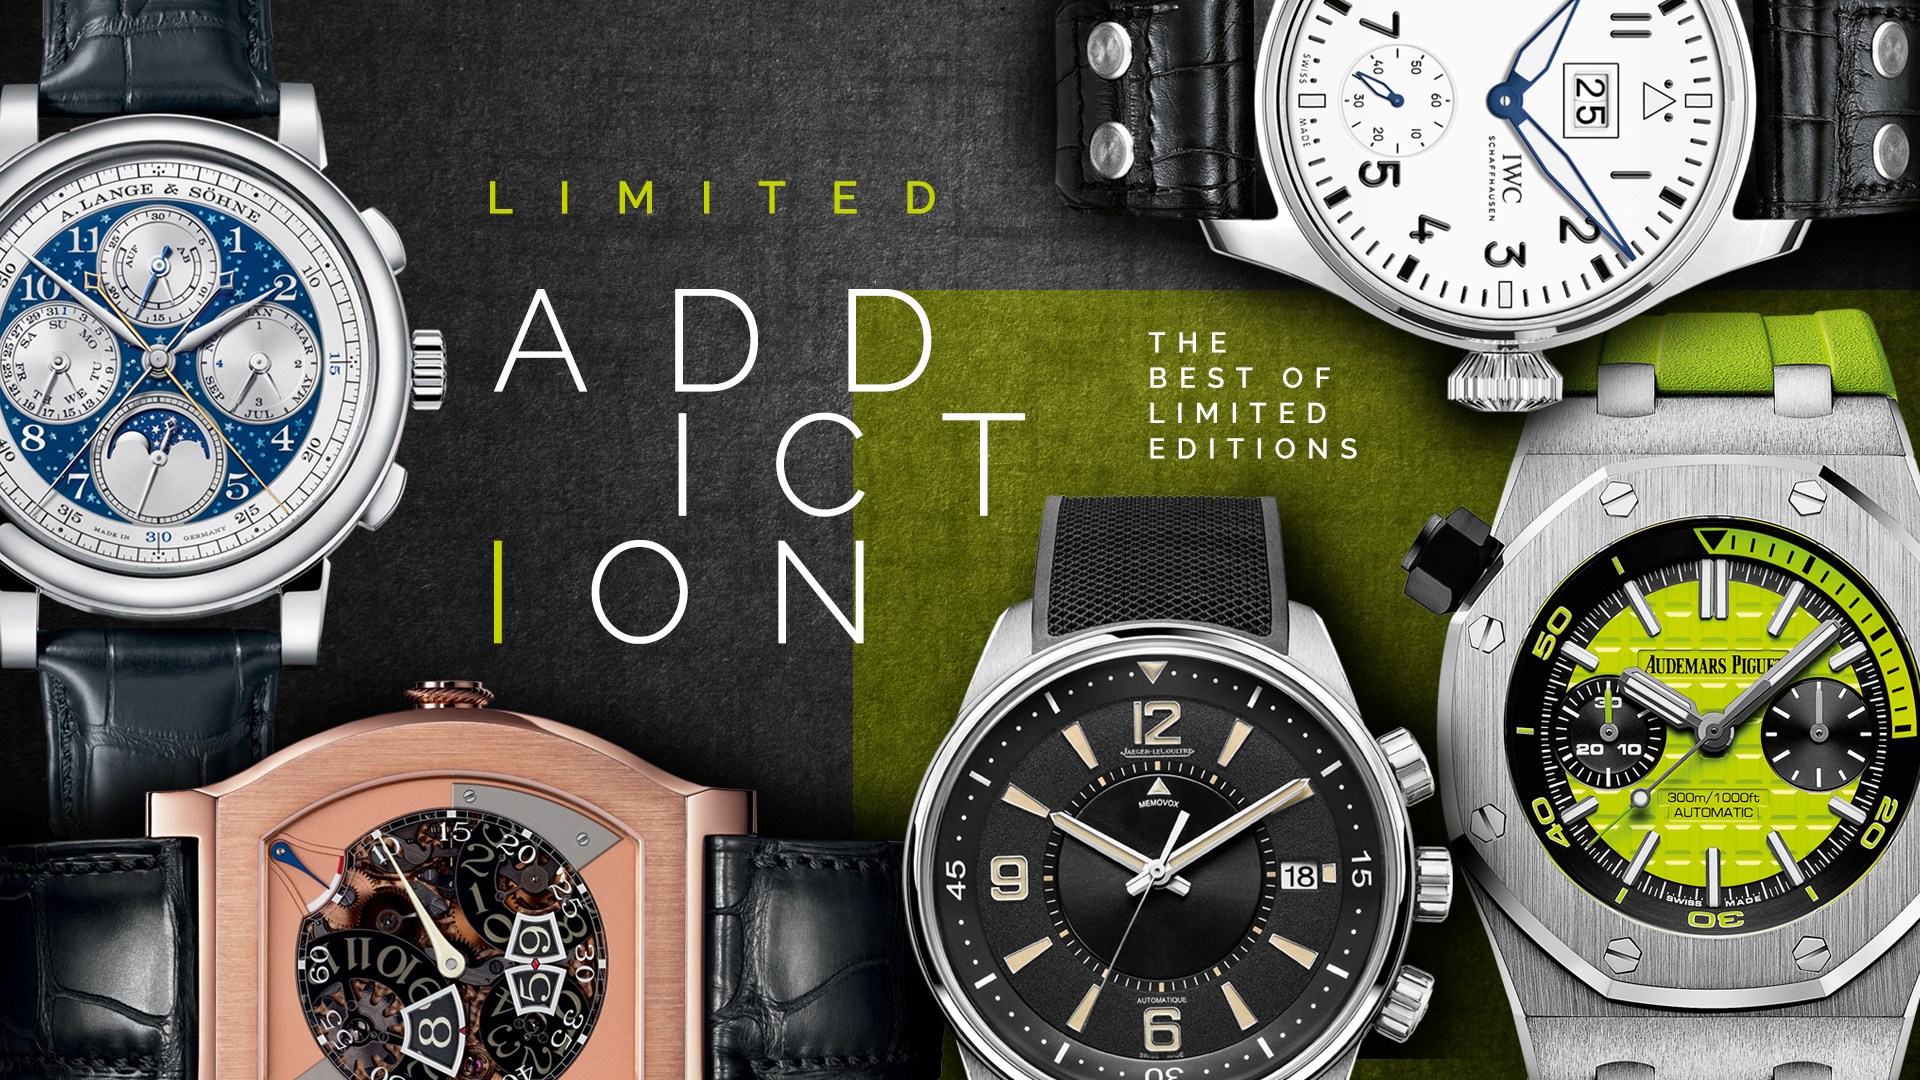 Limited Addiction: The Best of Limited Editions